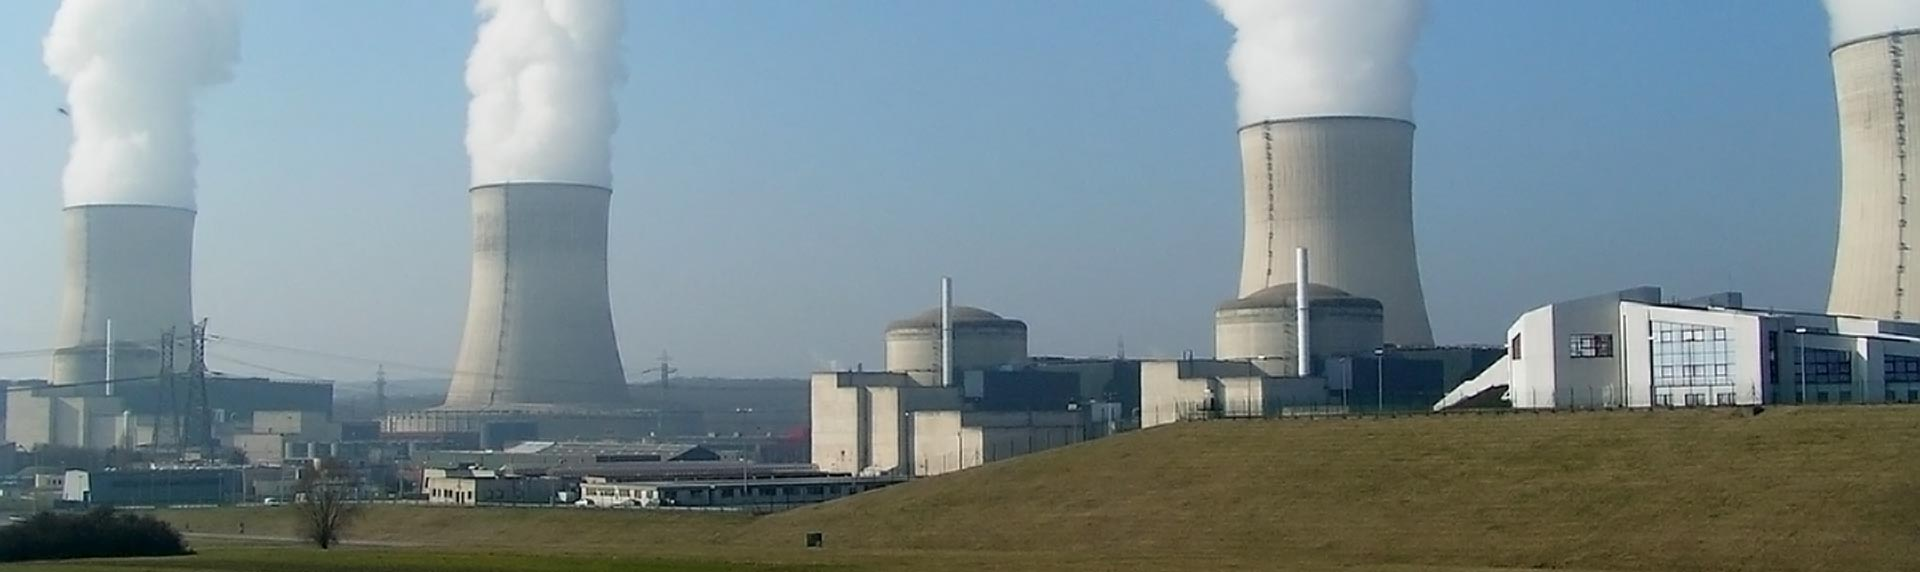 Nuclear Power Plant in Cattenom